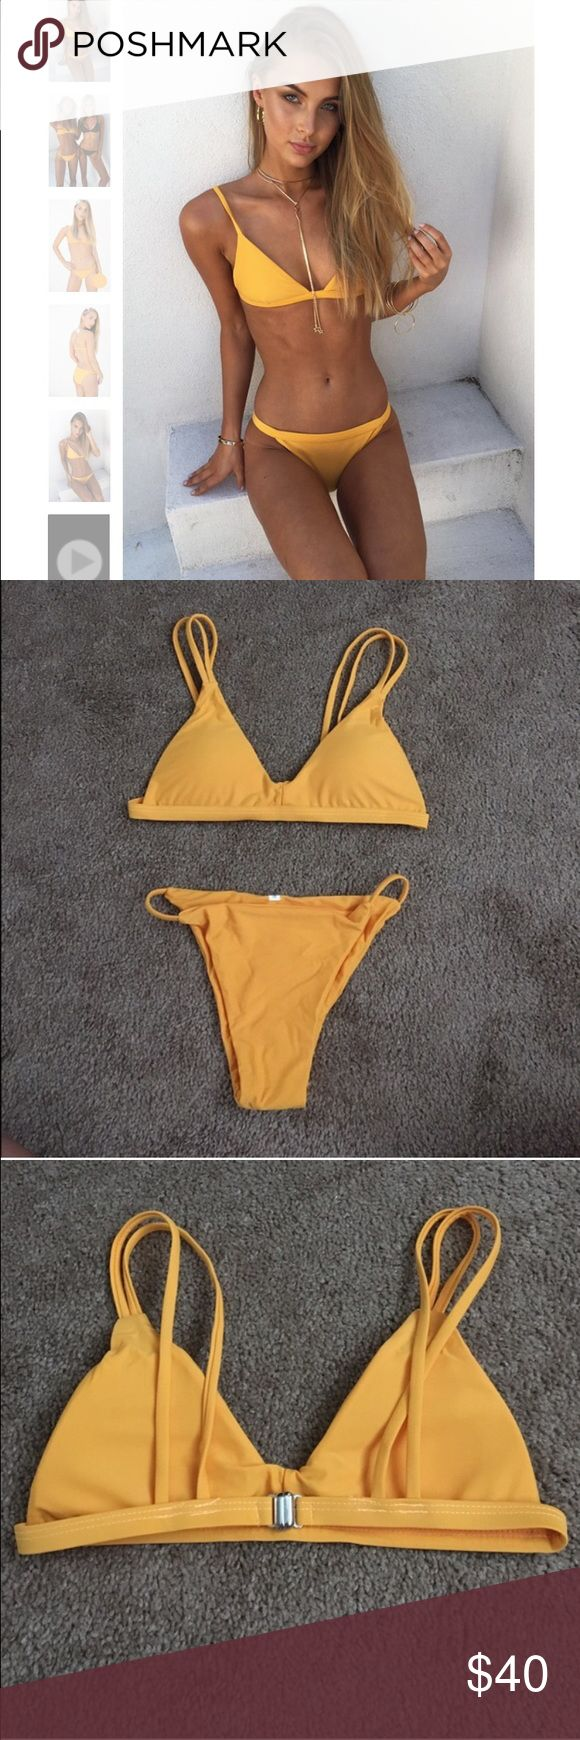 Sweet orange bikini. PLEASE READ DESCRIPTION Not saving skirt, just very similar to the one on their website. Just tagged it for exposure. Never got to wear it because it doesn't fit me unfortunately the bottoms are too tight on my waist. Runs small so it would fit a xsmall, maybe a small if your hips aren't so wide. Sabo Skirt Swim Bikinis